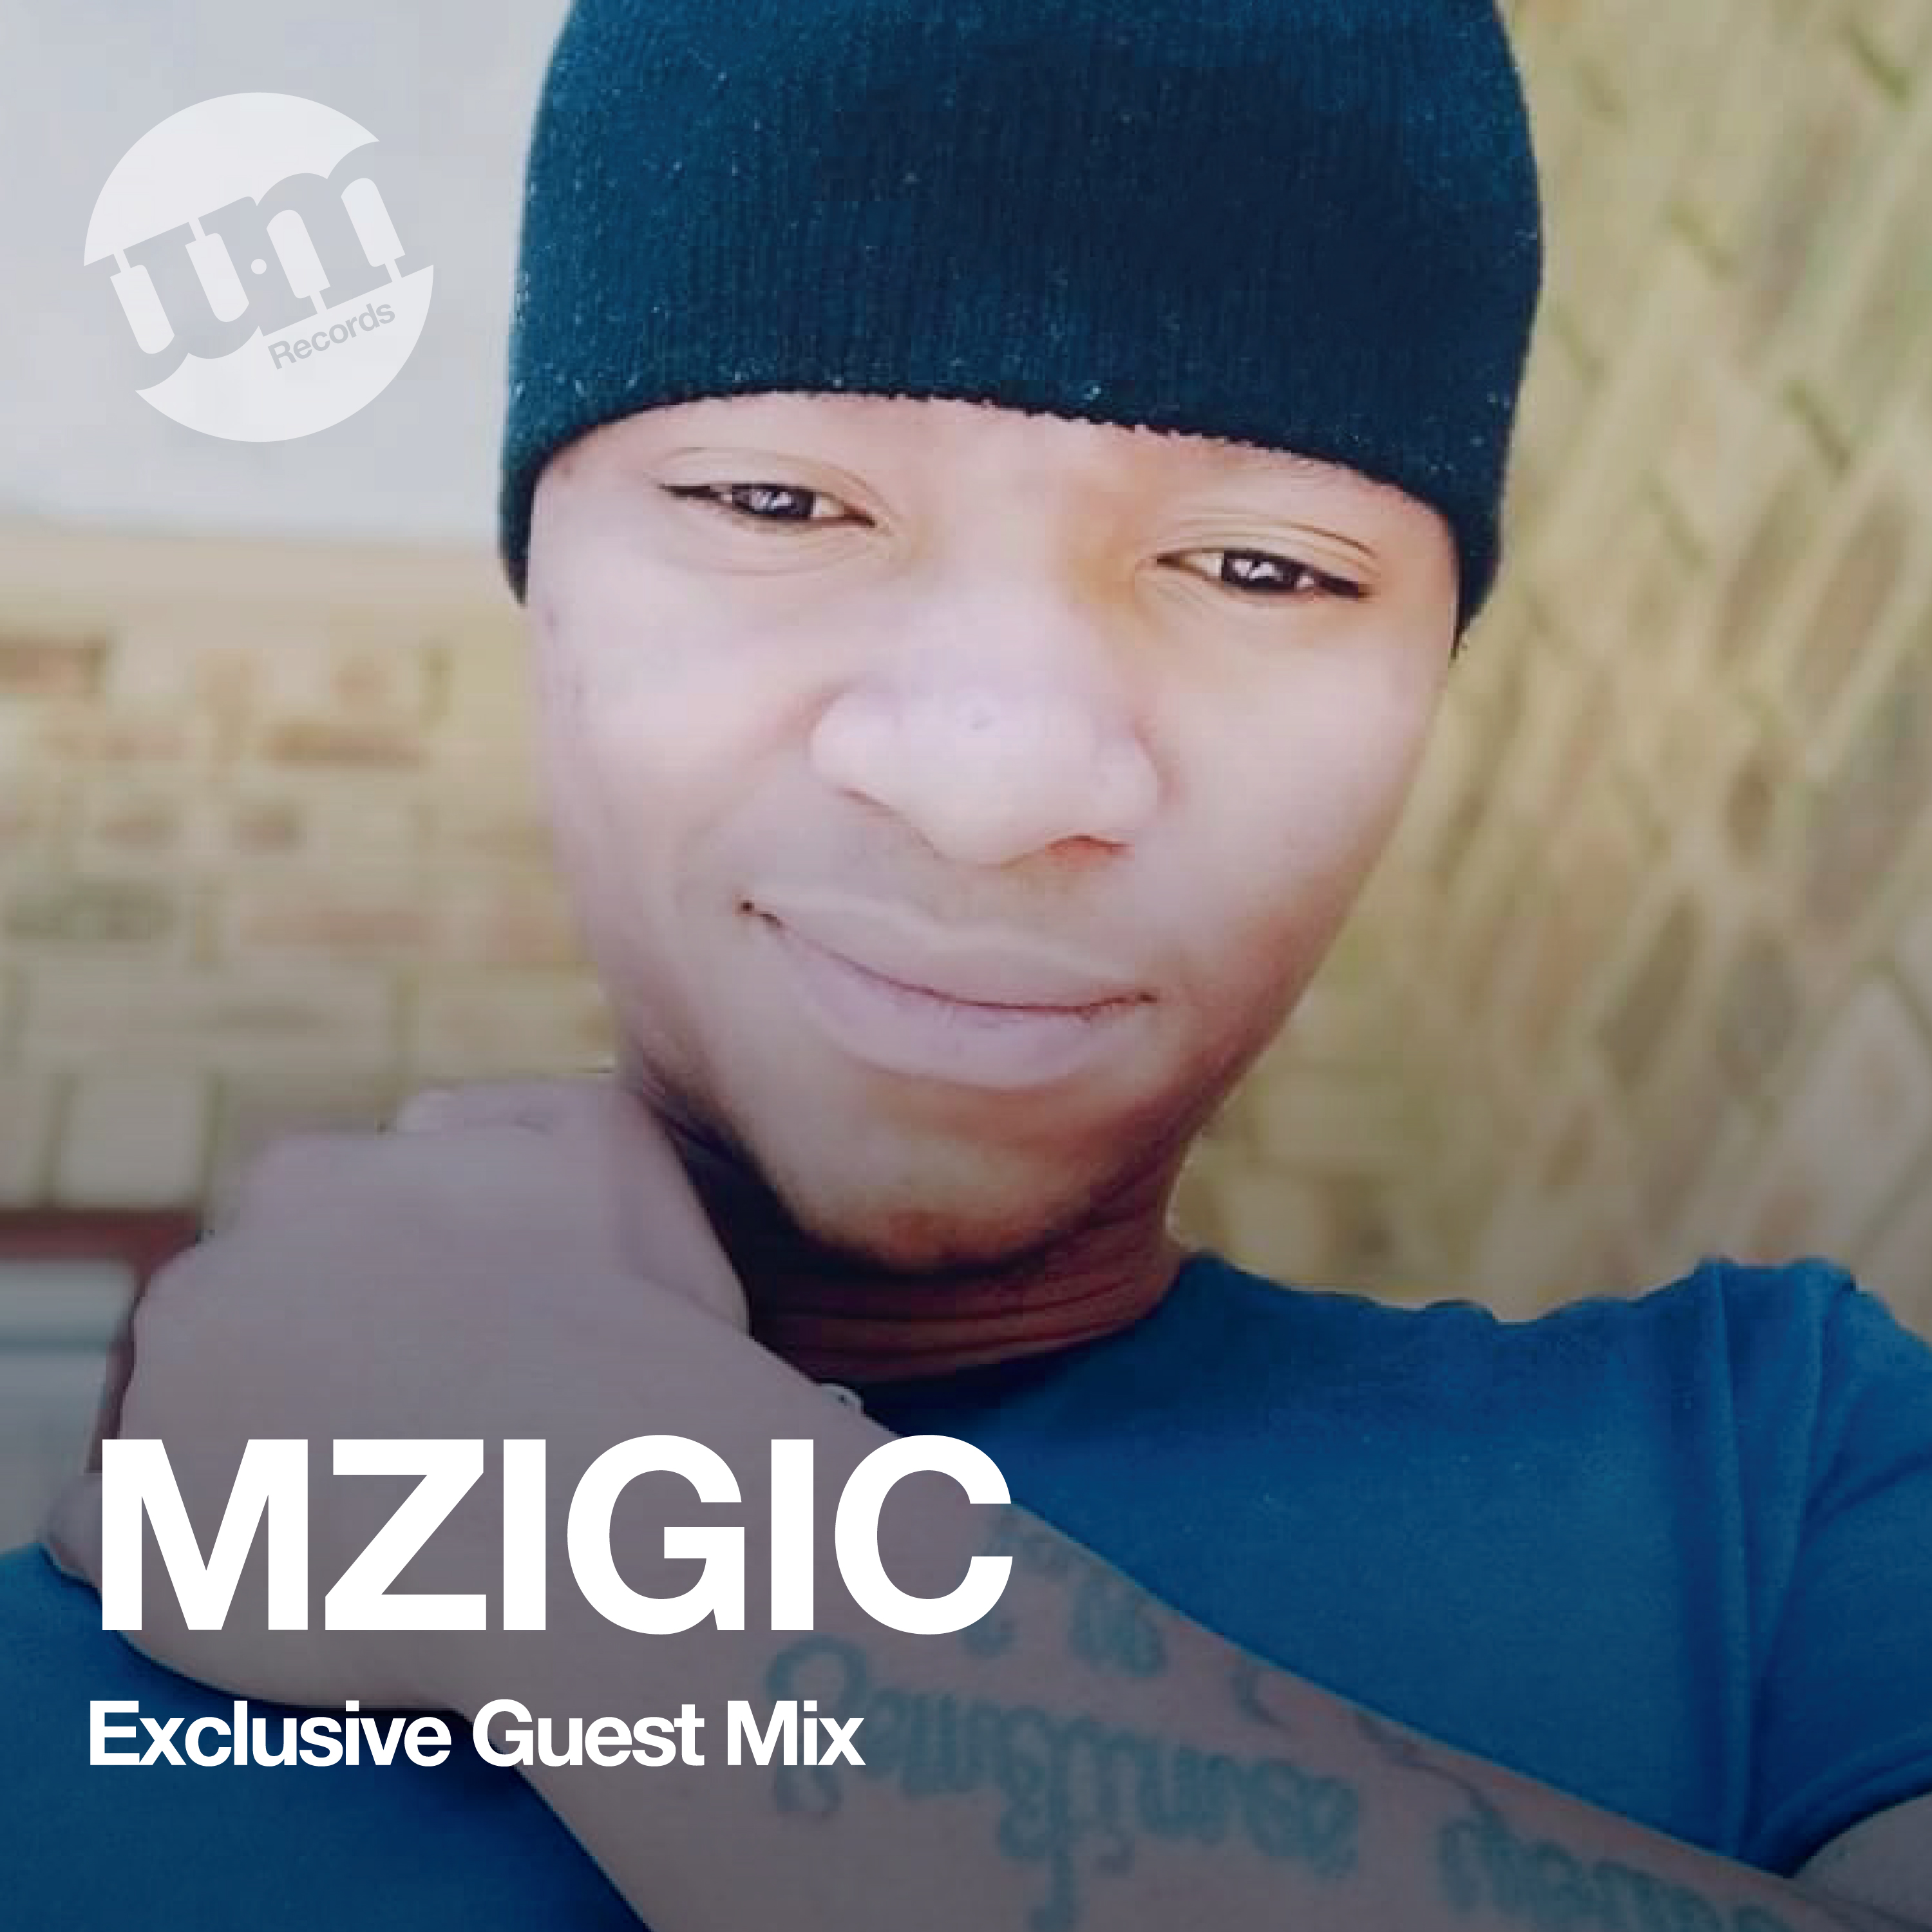 MZIGIC - Exclusive UM Guest Mix - (09.06.20)